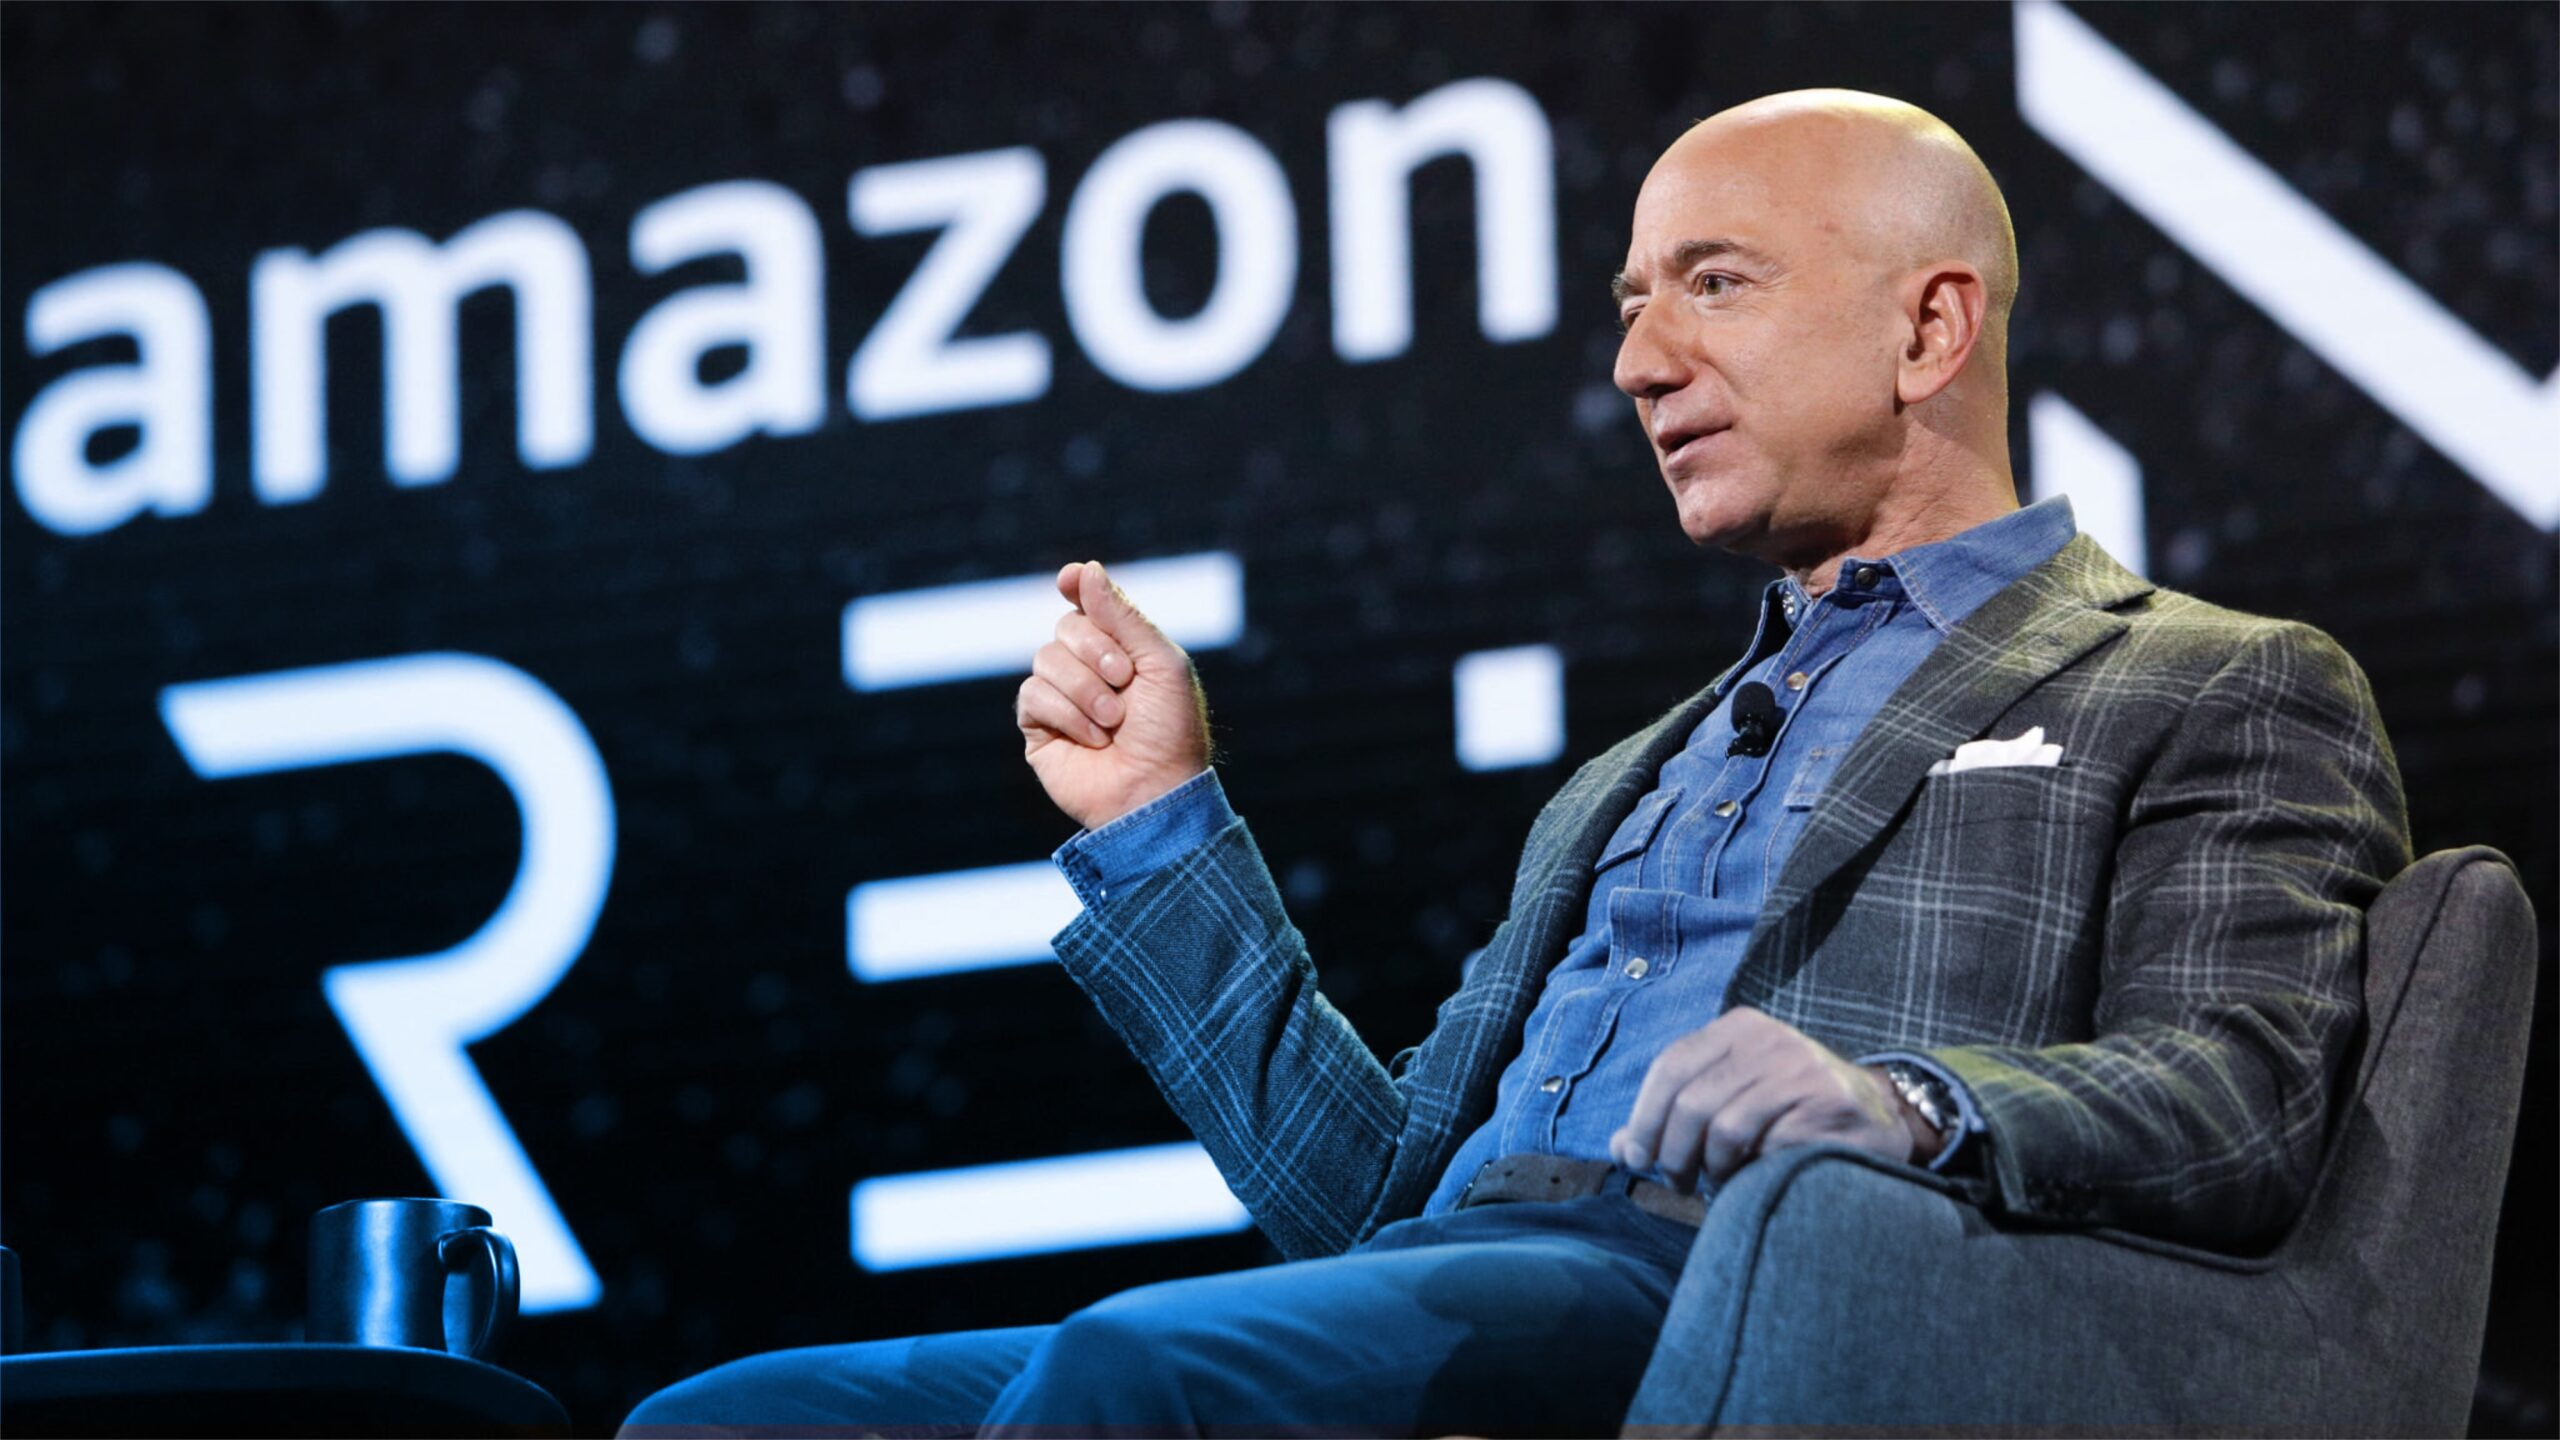 Amazon Quietly Changed Its Content Policy to Include 'Hate Speech' Ban | Harbingers Daily